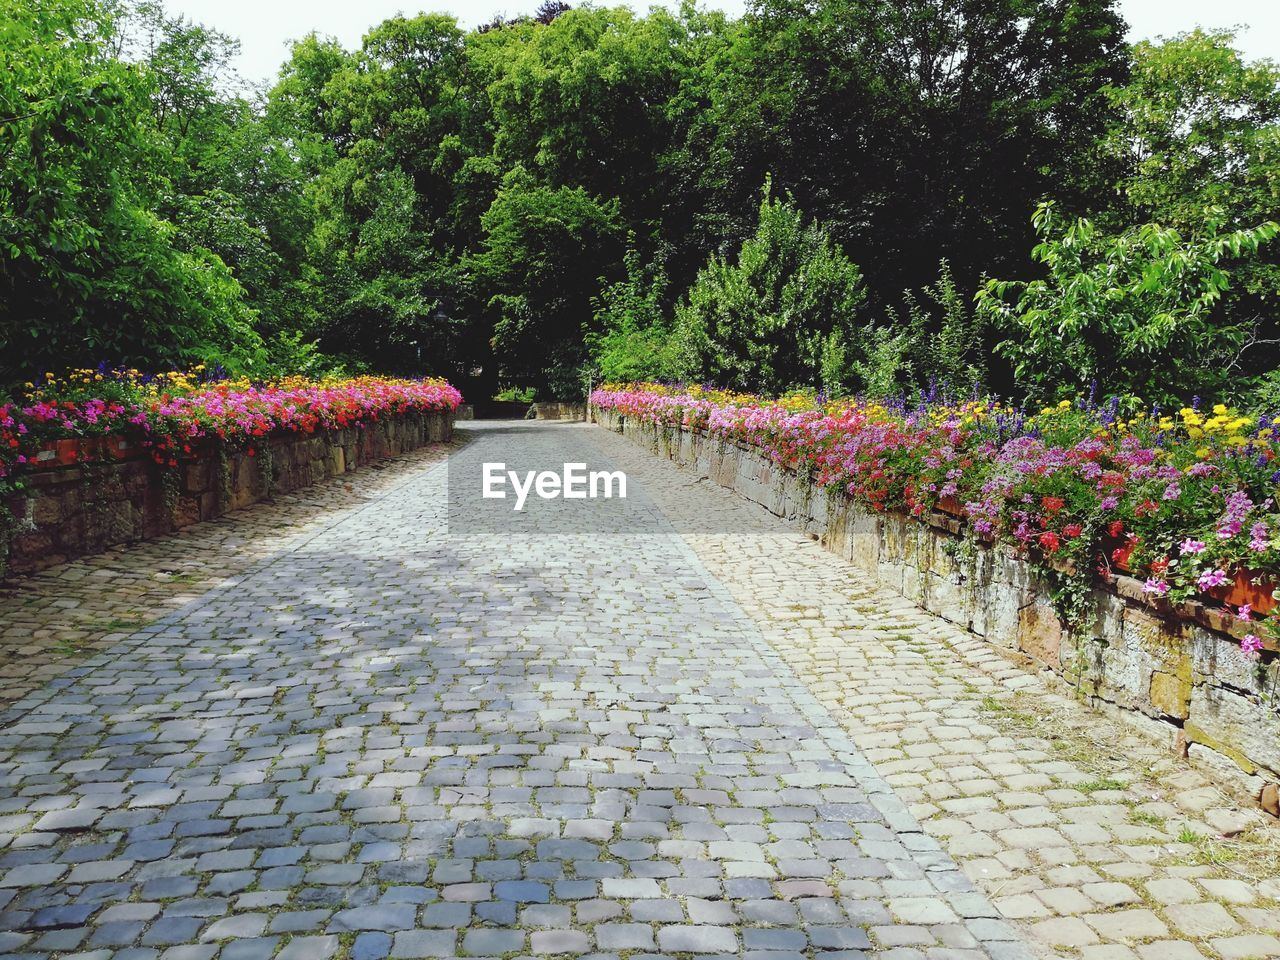 plant, tree, footpath, flower, flowering plant, growth, nature, direction, beauty in nature, day, the way forward, no people, park, outdoors, diminishing perspective, cobblestone, street, garden, park - man made space, green color, paving stone, flowerbed, garden path, treelined